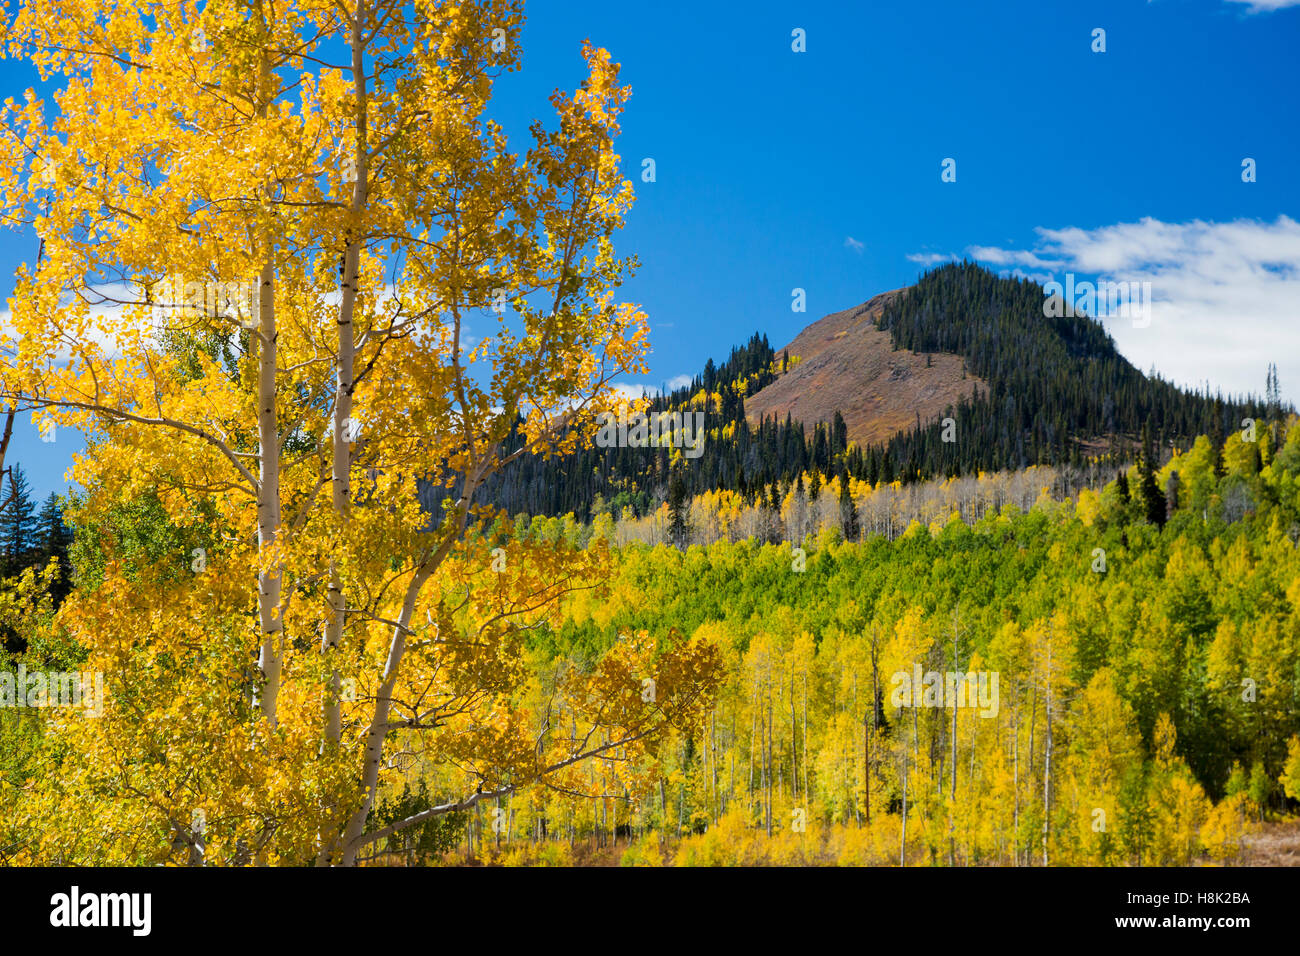 Steamboat Springs, Colorado - Fall colors in the Rocky Mountains at Muddy Pass on the Continental Divide. - Stock Image